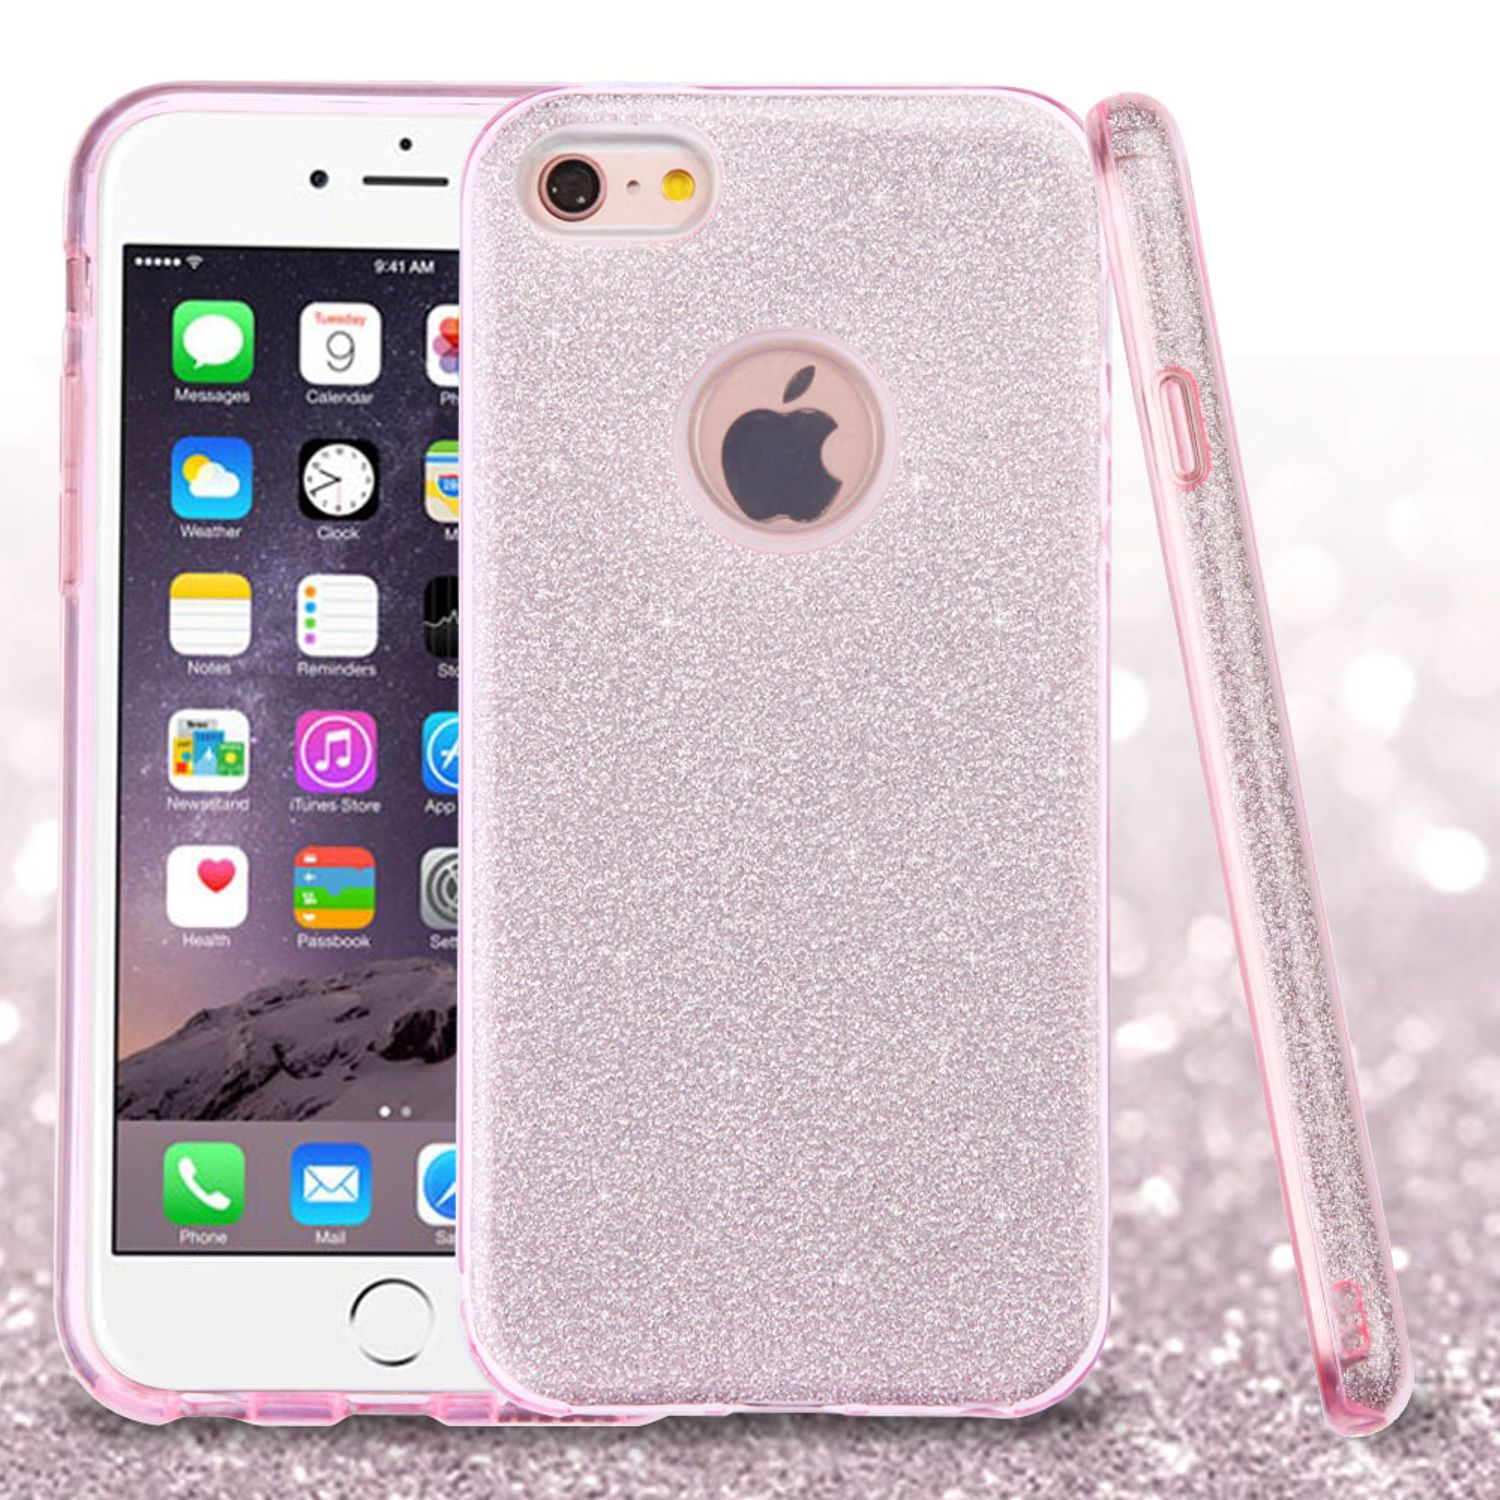 iPhone 6s Plus Case, iPhone 6 Plus Case, by ASMYNA Pink Full Glitter Hybrid Hard PC/TPU Dual Layer Protective Case Cover For Apple iPhone 6s Plus / 6 Plus